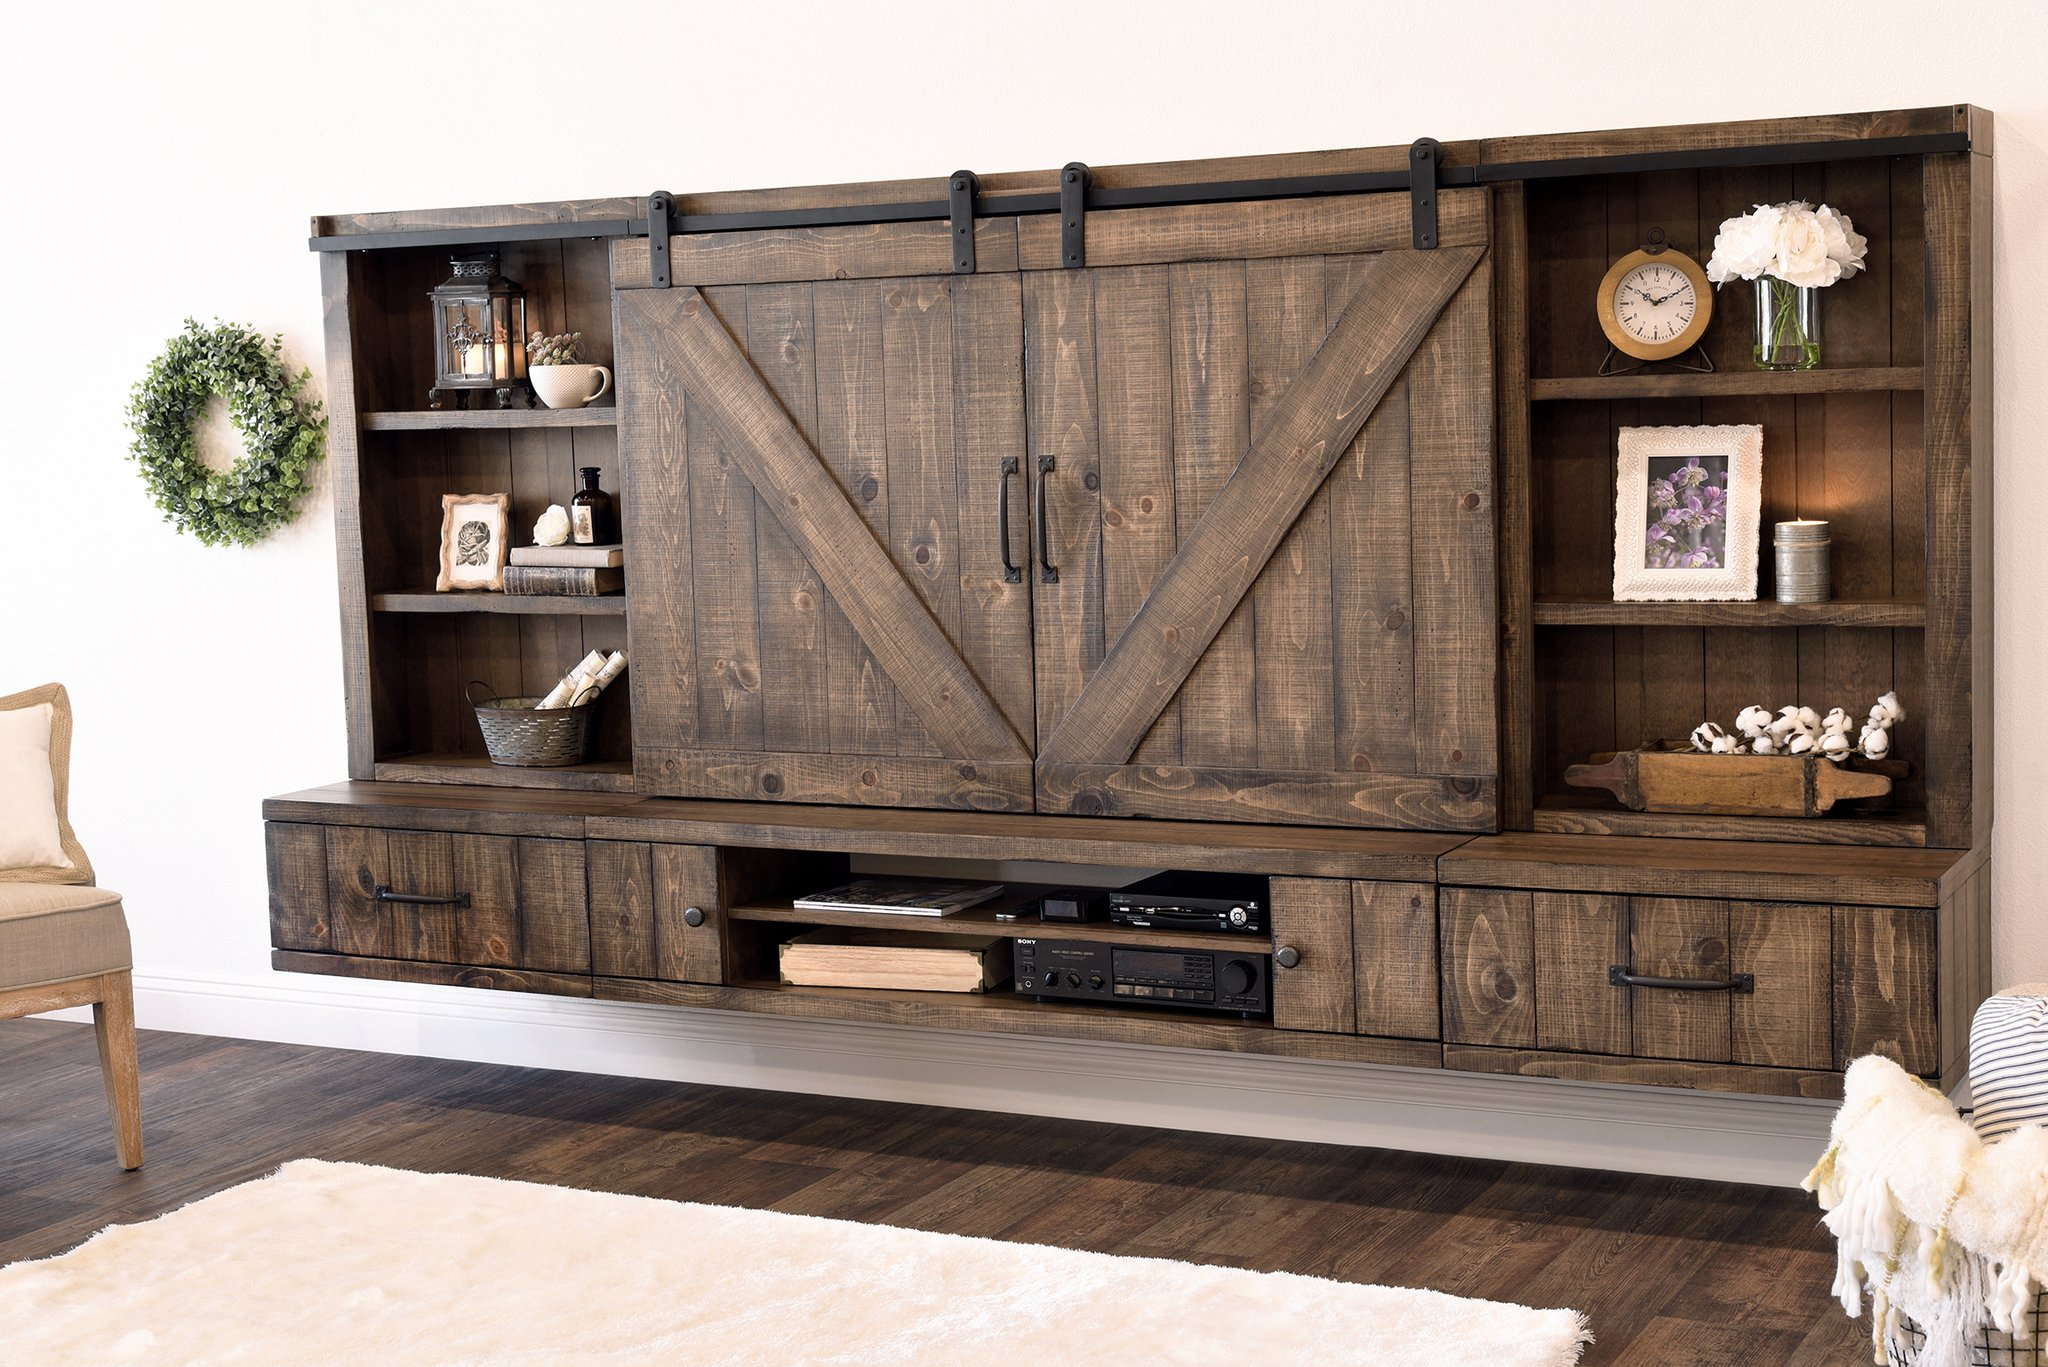 farmhouse barn door entertainment center floating stand wall woodwaves shelves for system home office built ins tiny kitchen island flying fireplace mantels houston shelving